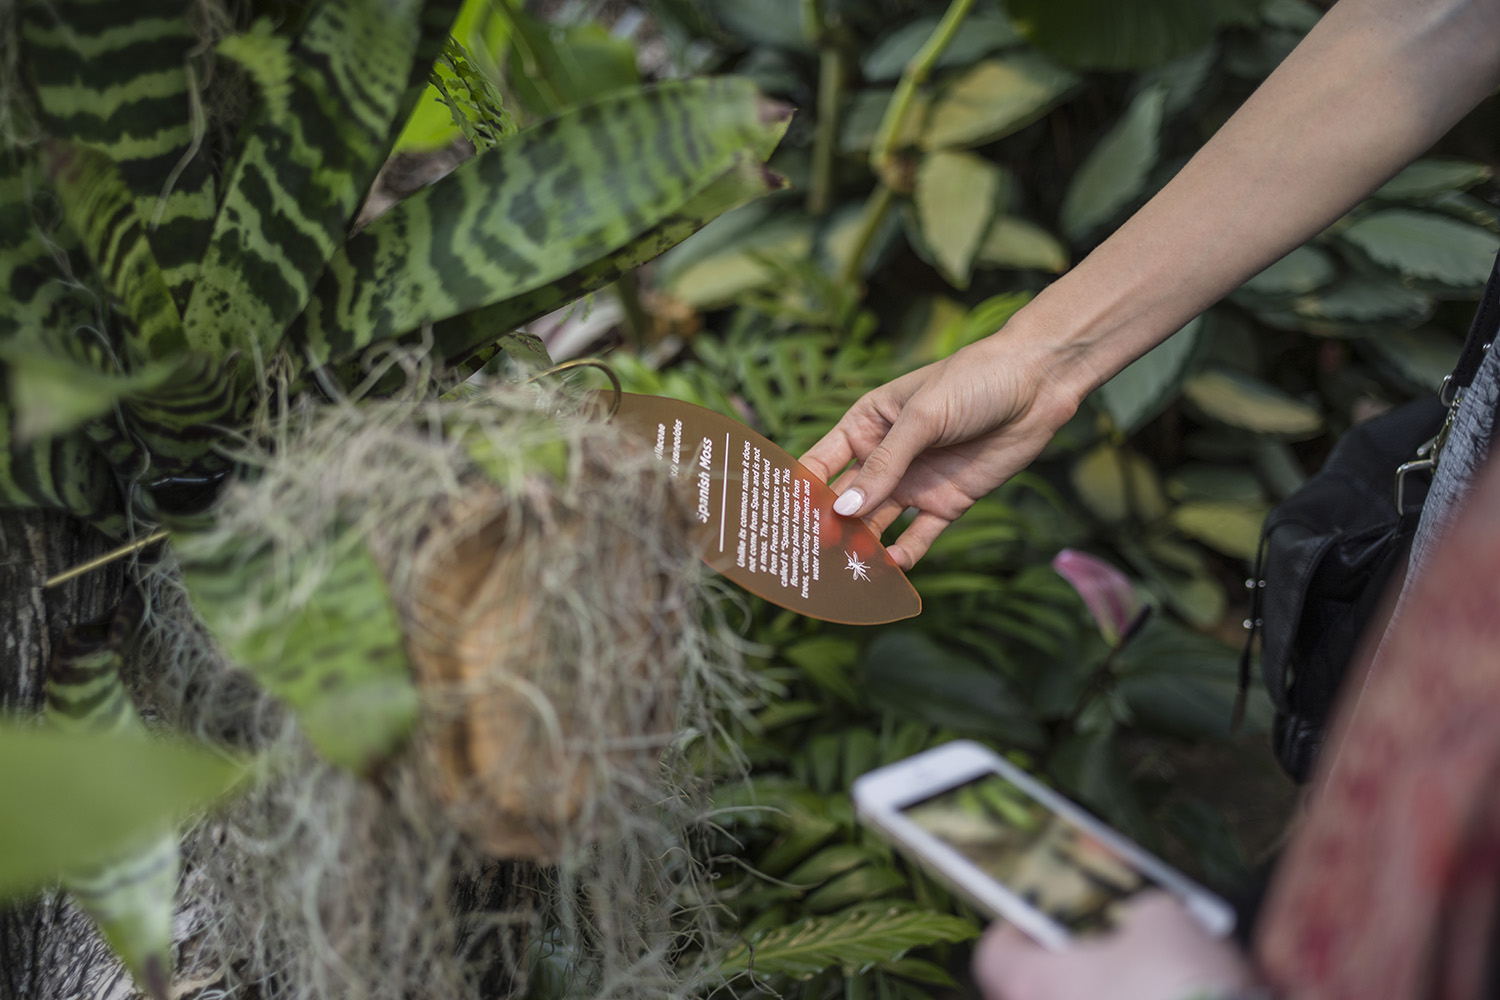 FRD designed a truly hands-on experience, with visitors encouraged to immerse themselves by feeling and smelling organic materials.